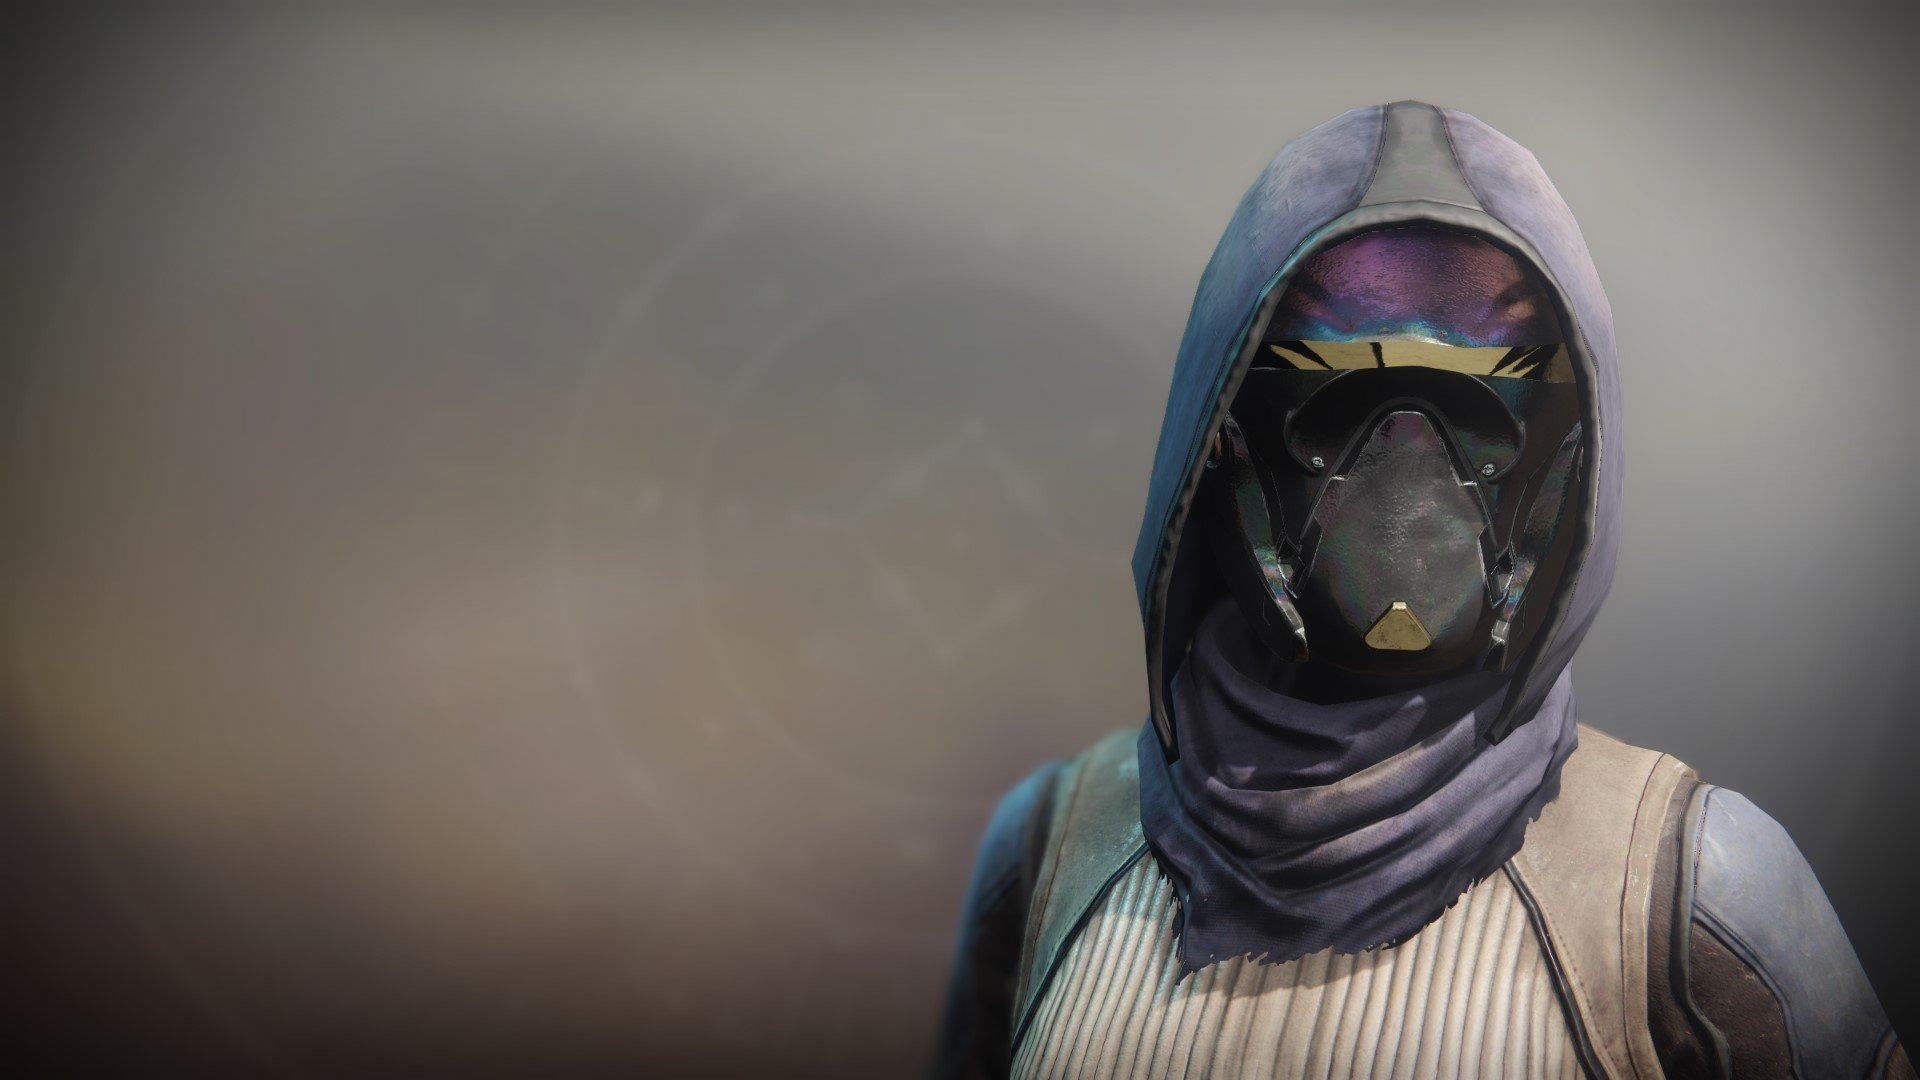 An in-game render of the Mask of Feltroc.